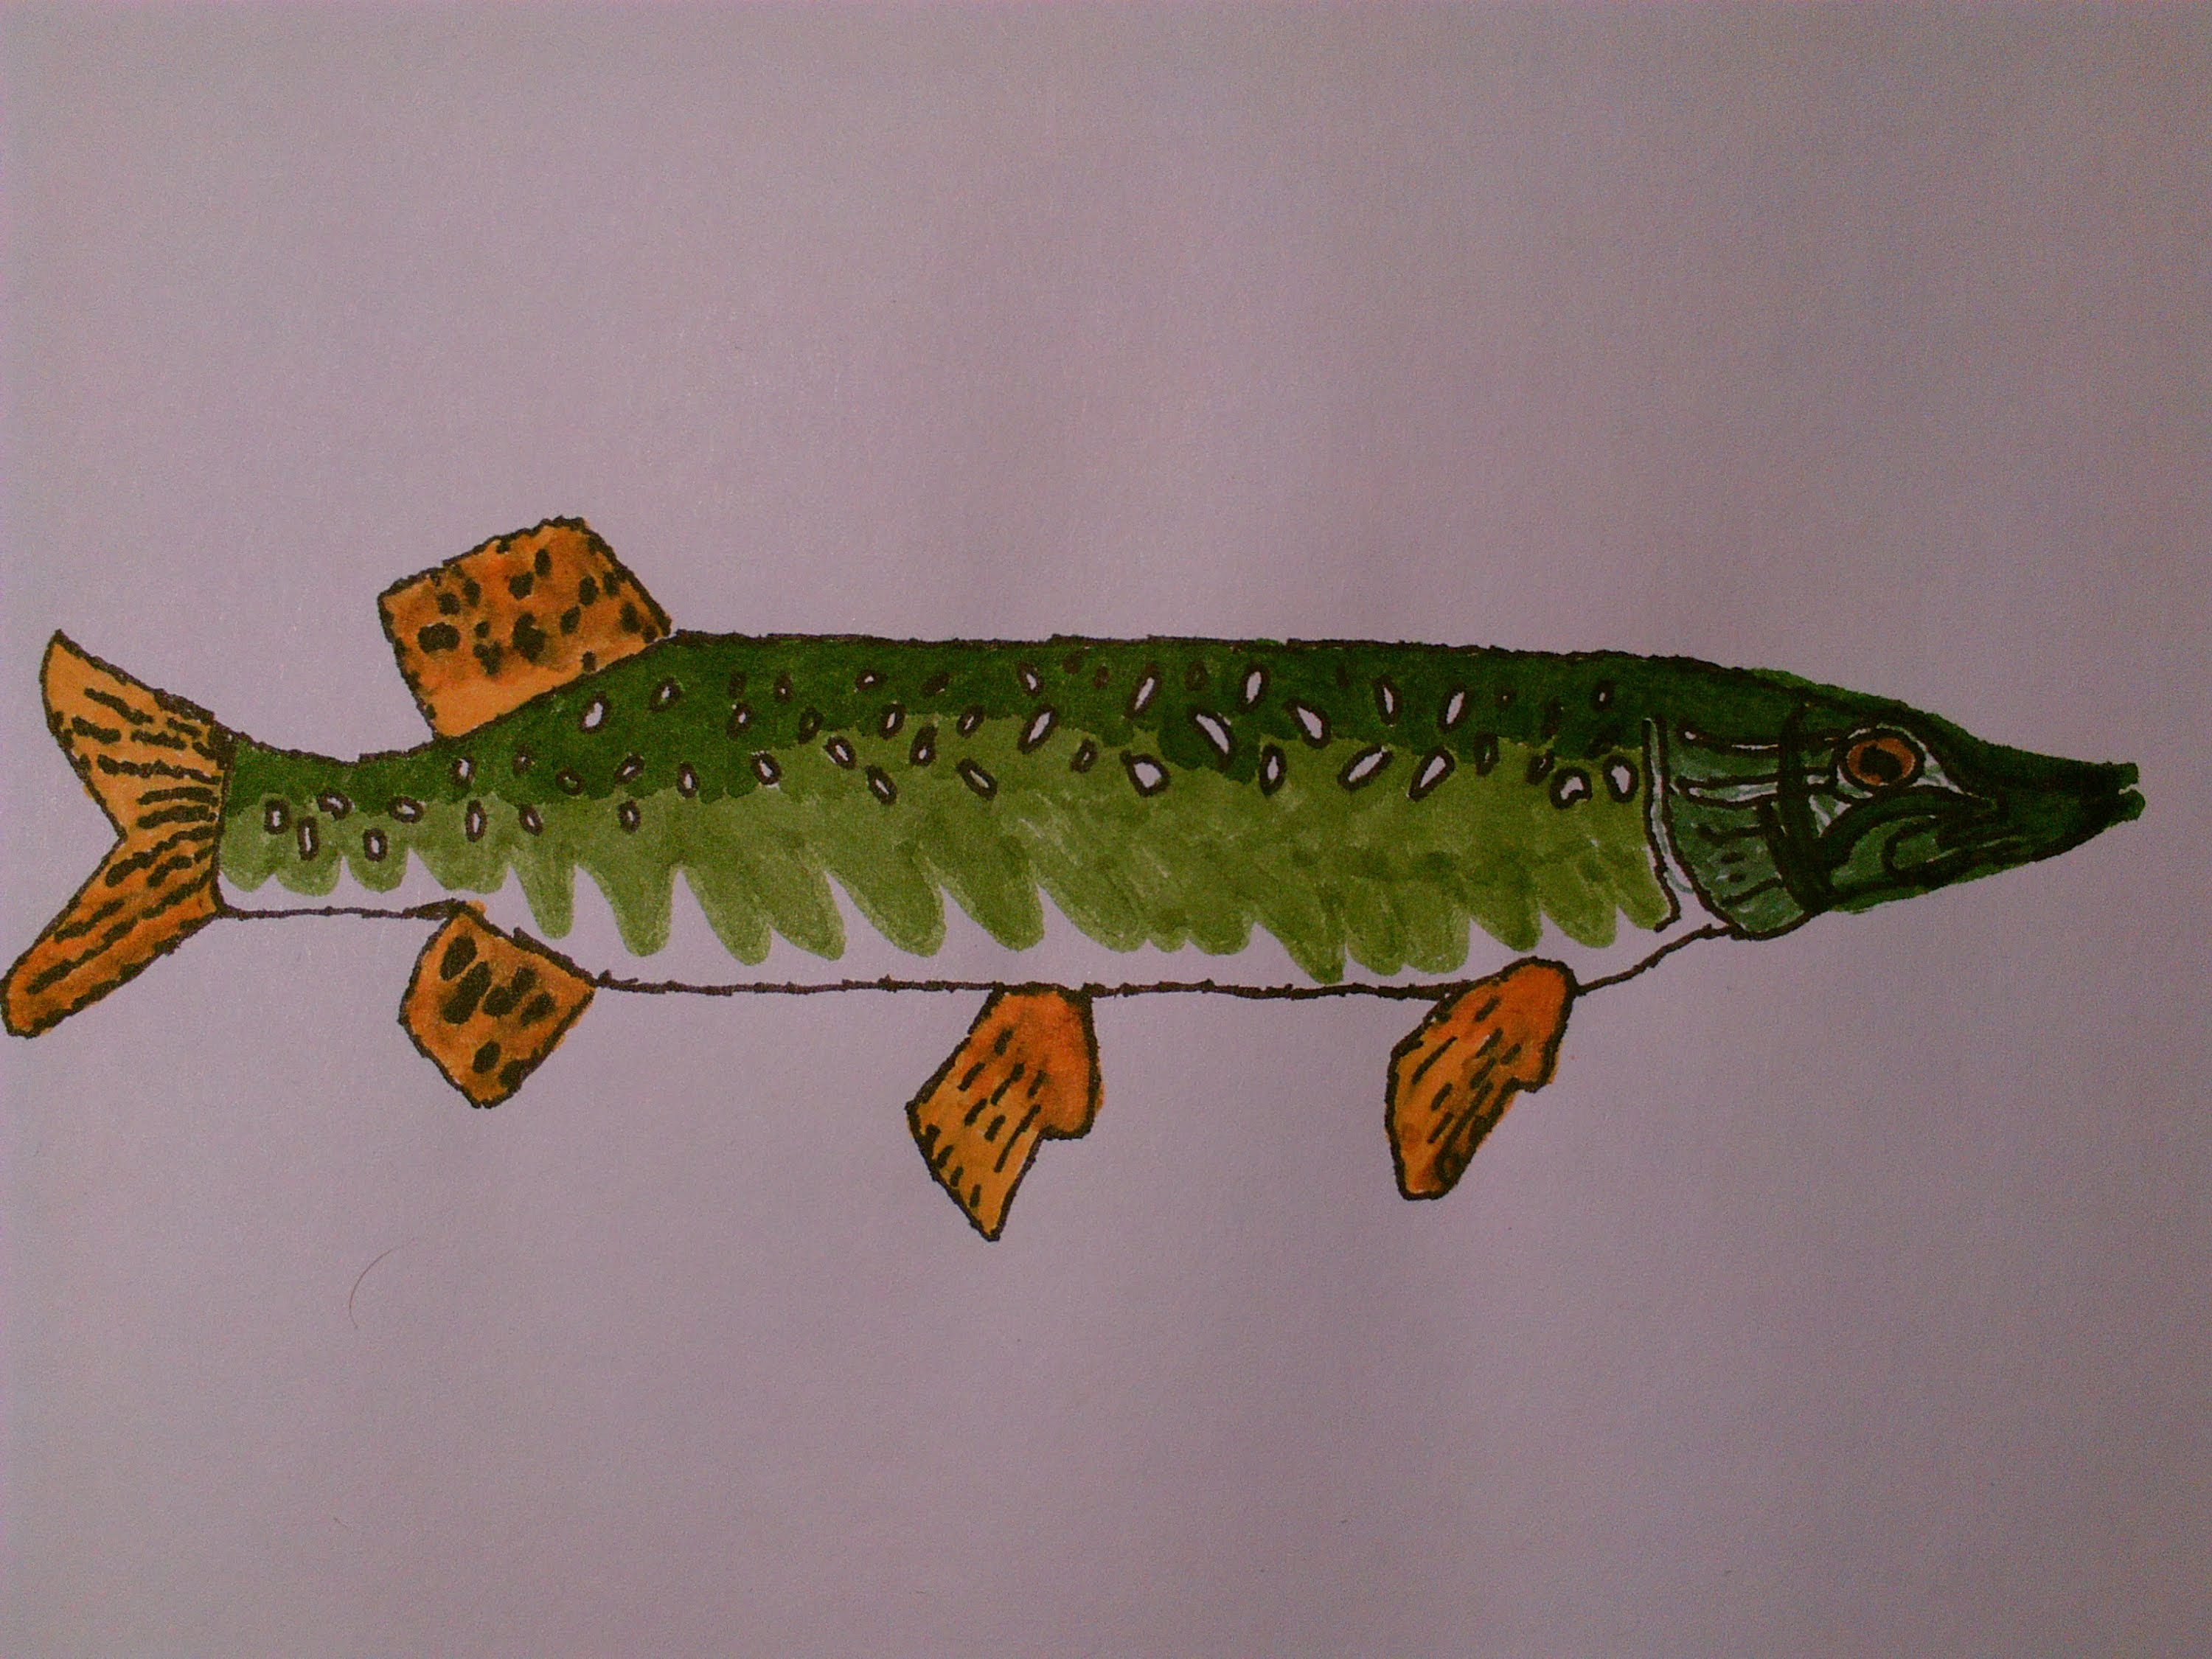 3000x2250 Northern Pike Being Drawn With Markers